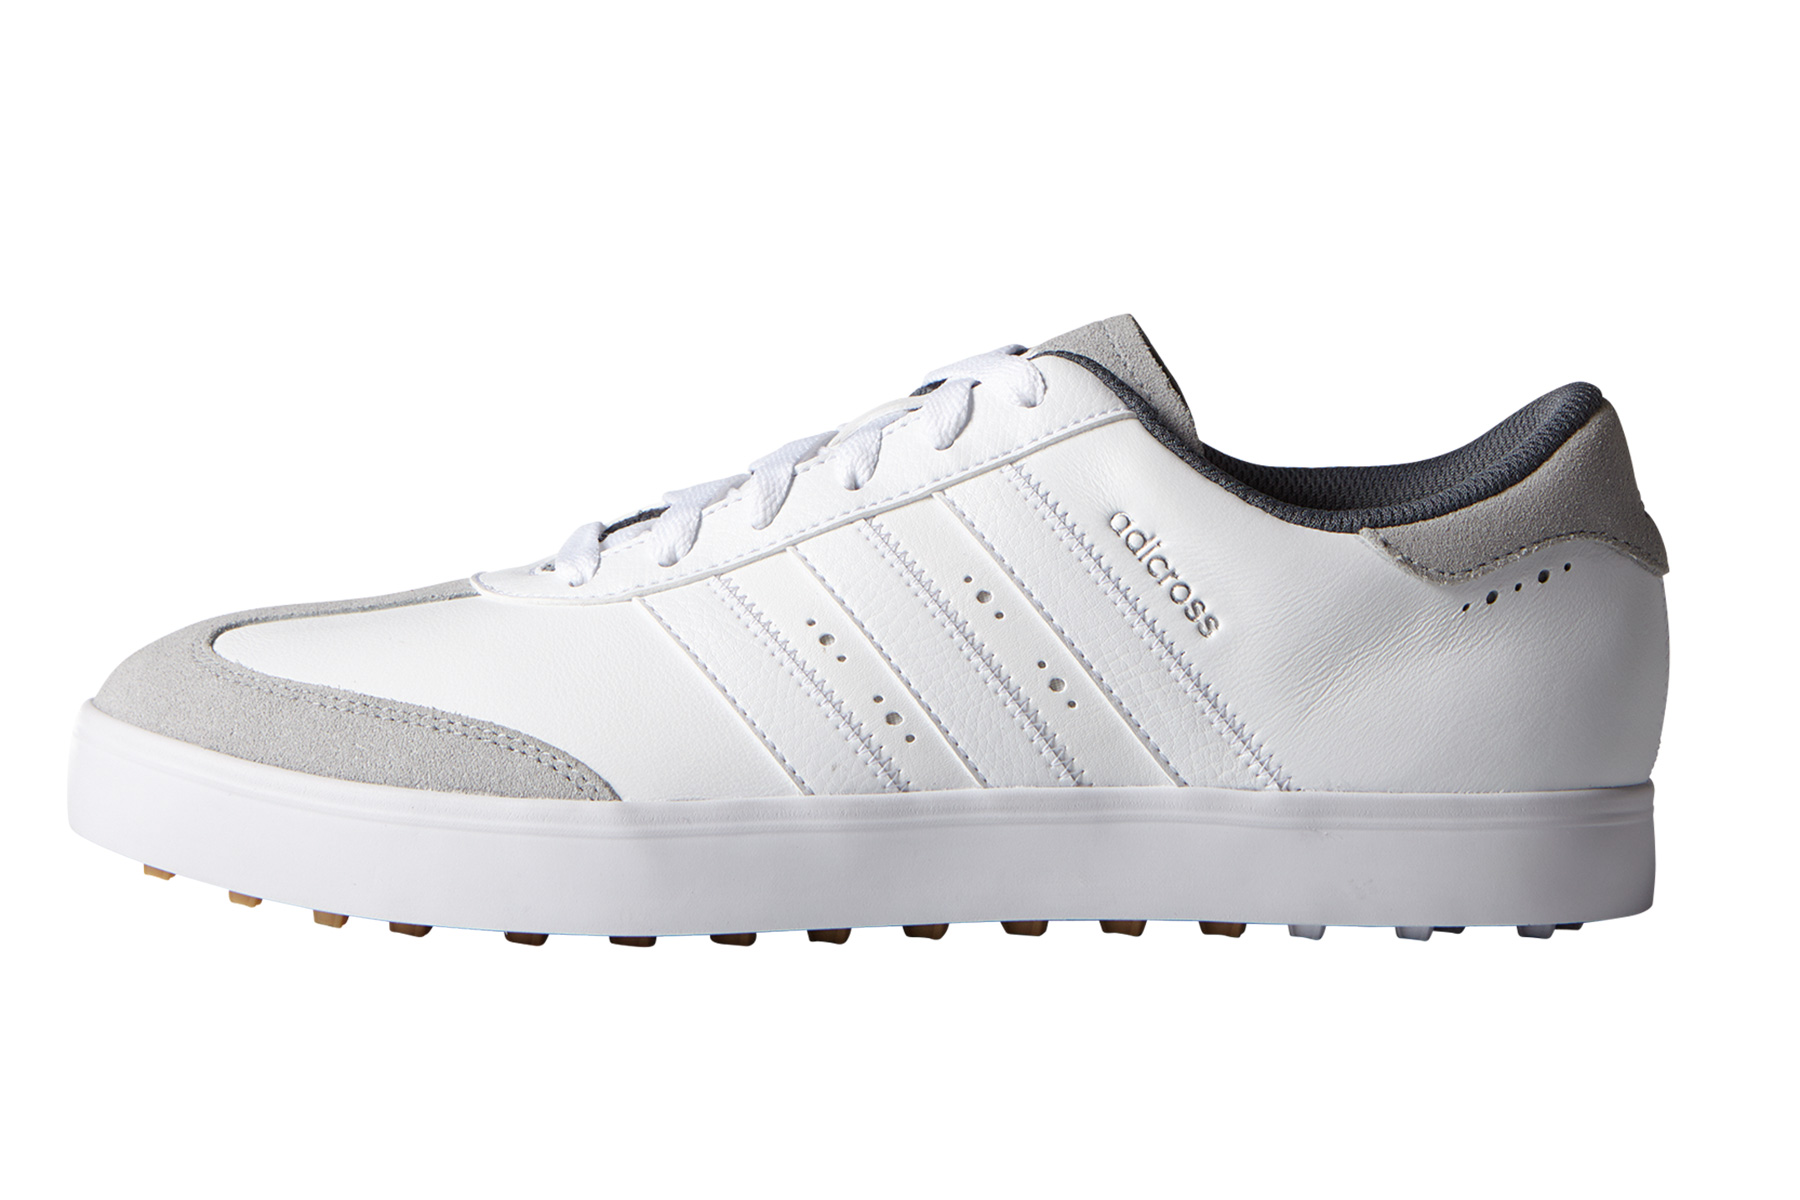 Adidas Golf Shoes Wide Width